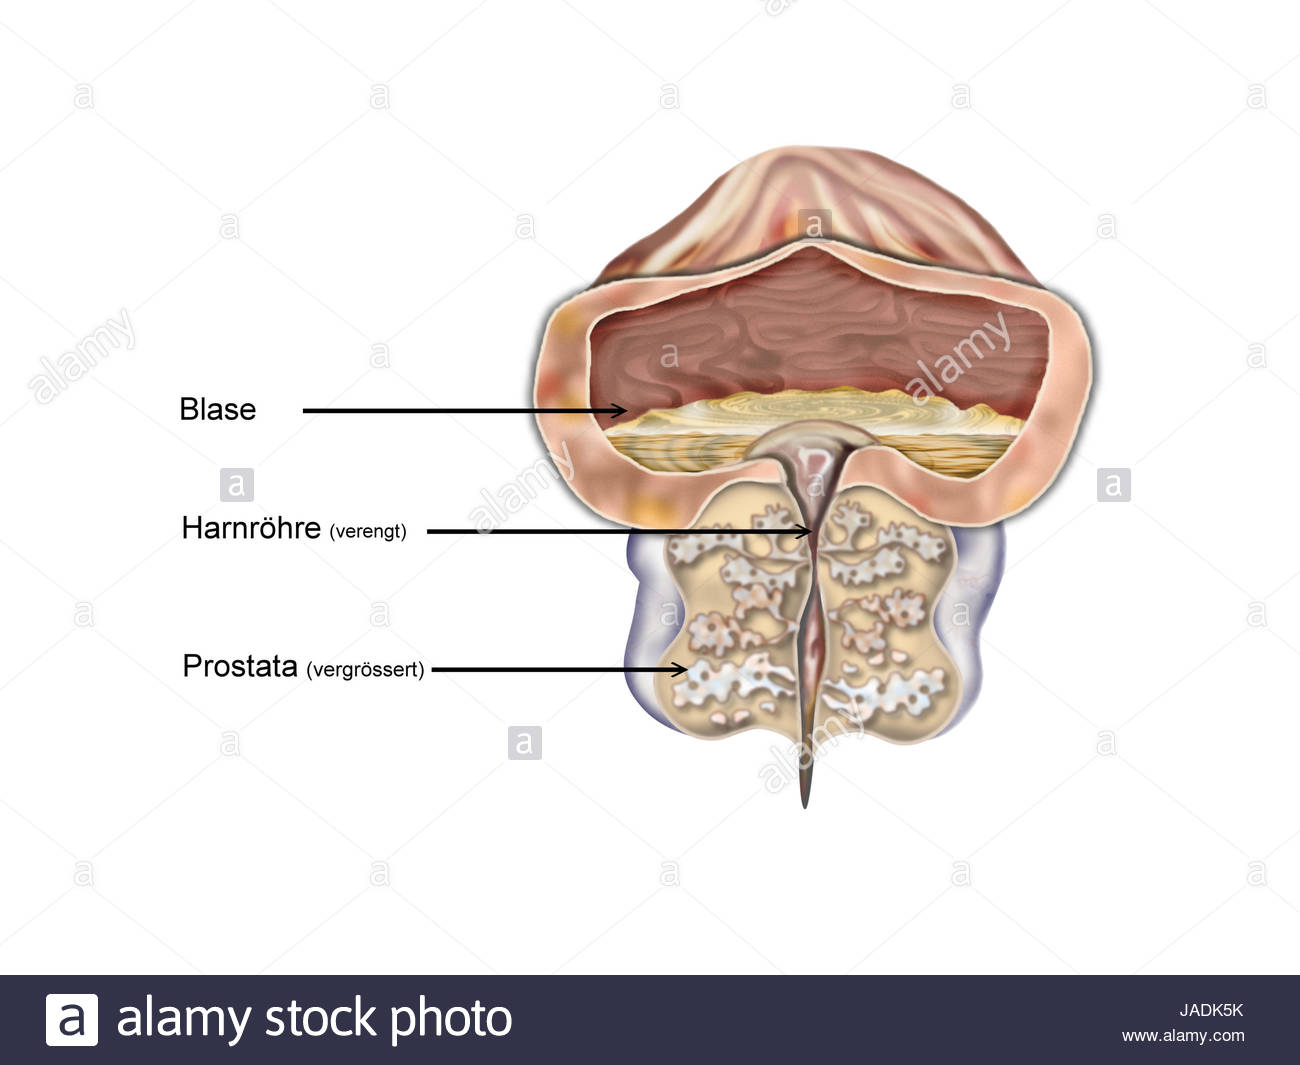 prostata vergrösserung Stock Photo: 144129935 - Alamy